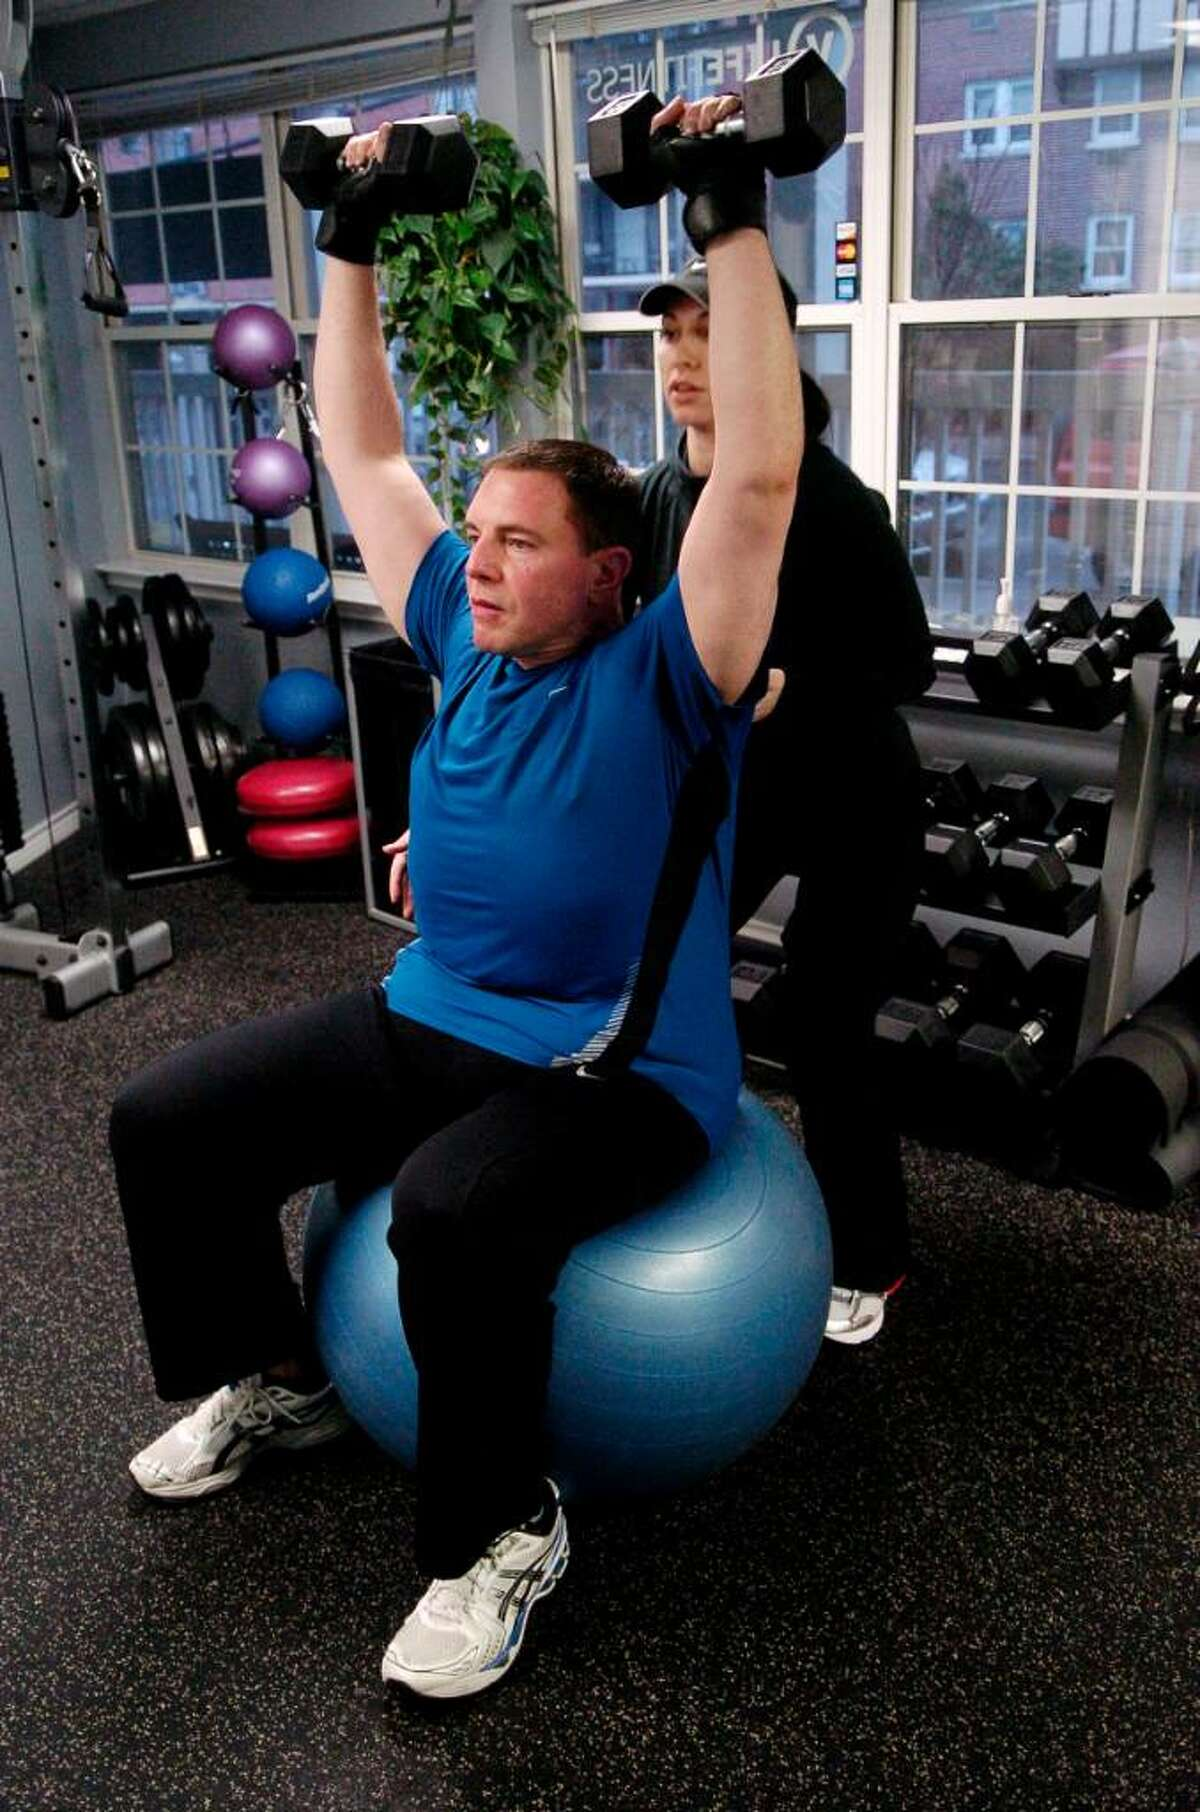 Veronica Thomas, owner of VLife Fitness in Stamford, Conn., trains Gene Ceriello on Friday March 12, 2010, who with her help has lost 150 lbs.